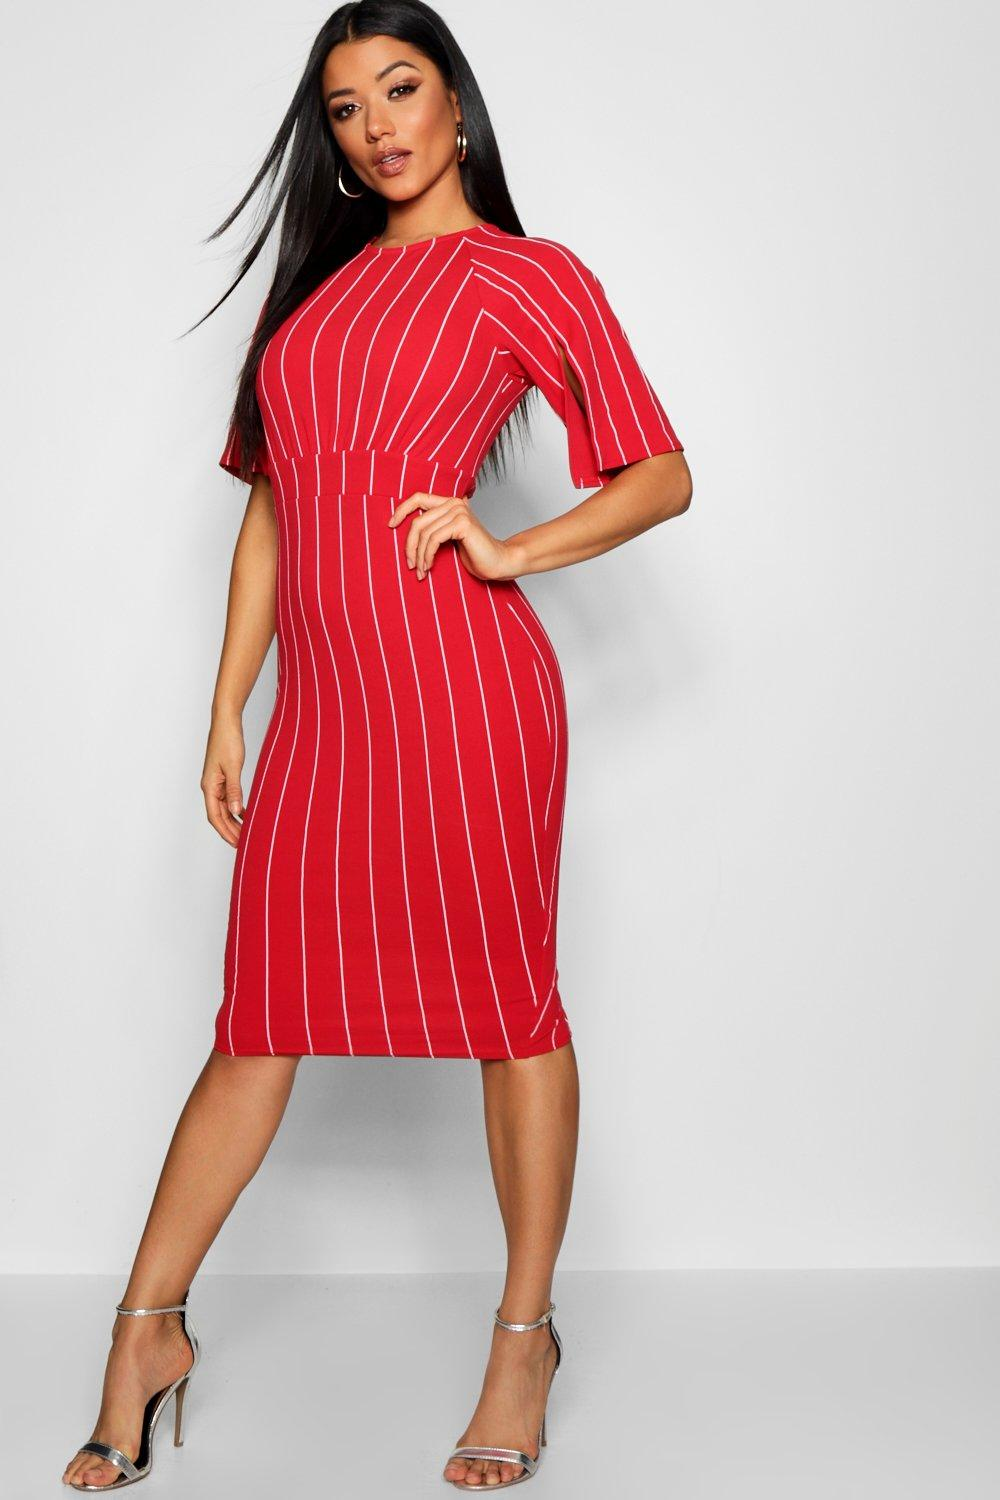 ccdb2e3a8b5 split sleeve detail wiggle midi dress - Shop split sleeve detail ...